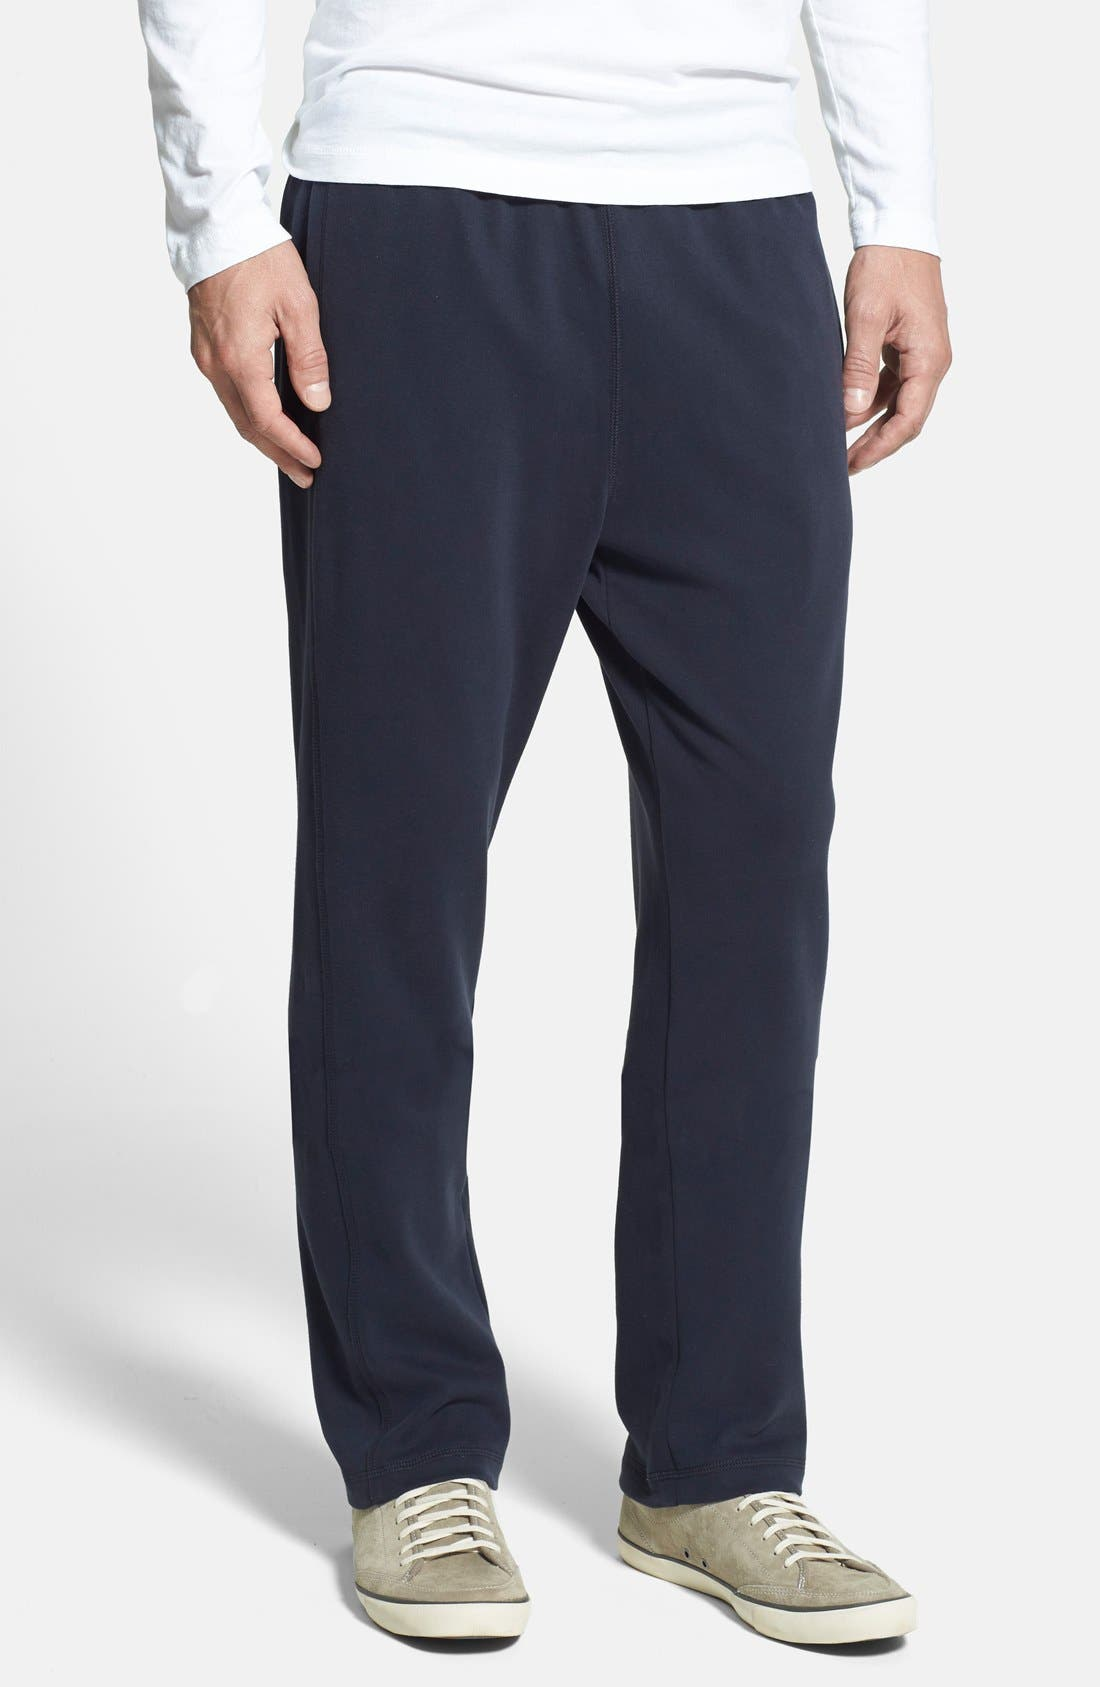 Alternate Image 1 Selected - Tommy Bahama 'New Pacific Palisade' Pima Cotton Knit Pants